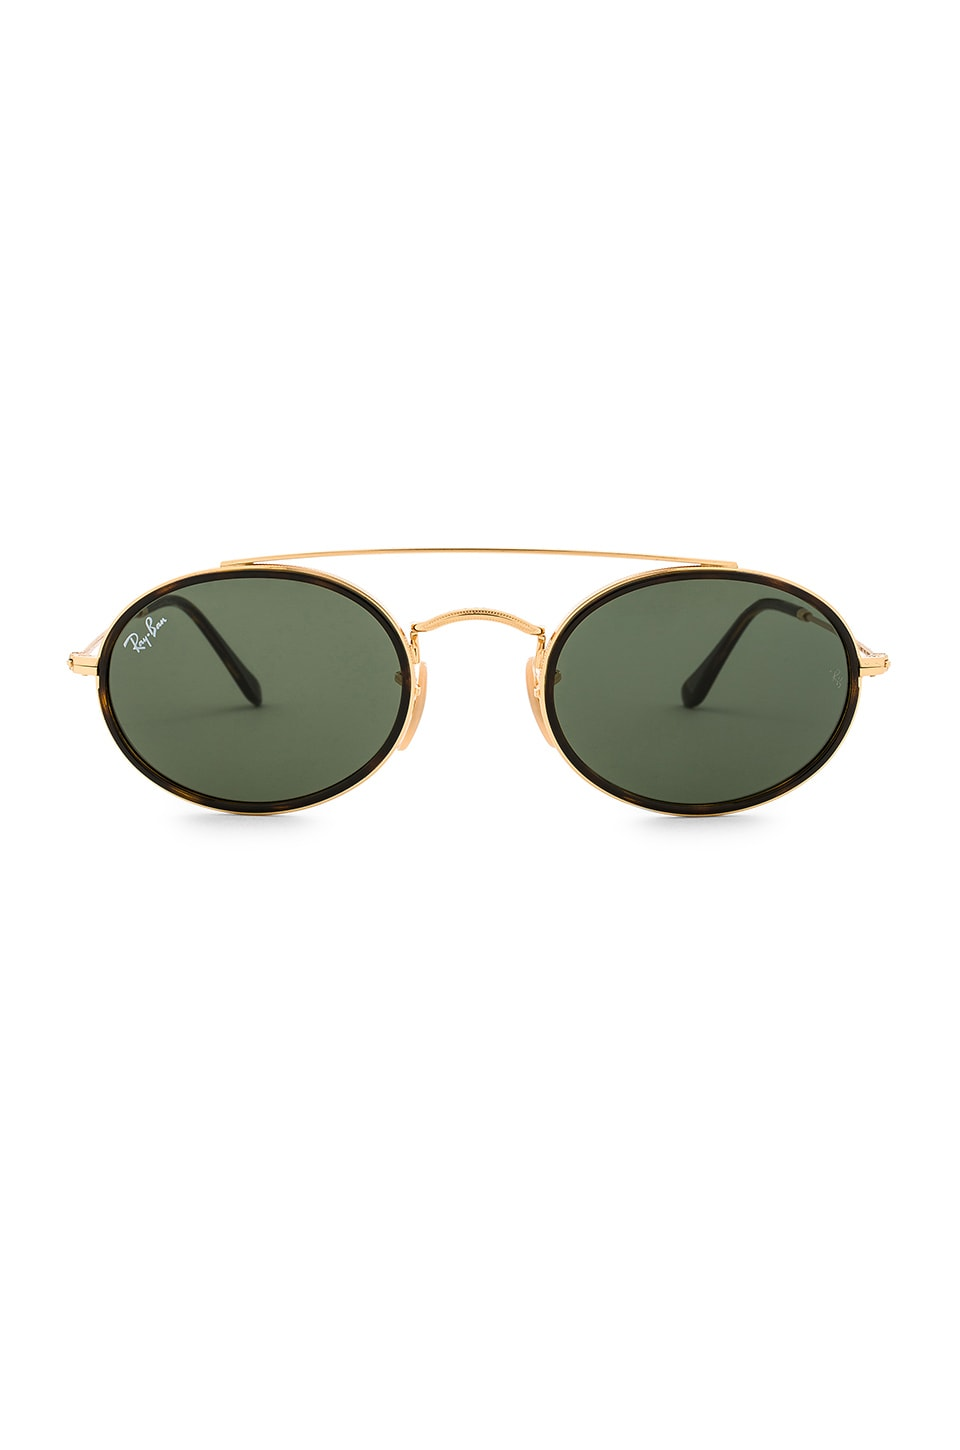 Ray-Ban Oval Double Bridge in Gold & Green